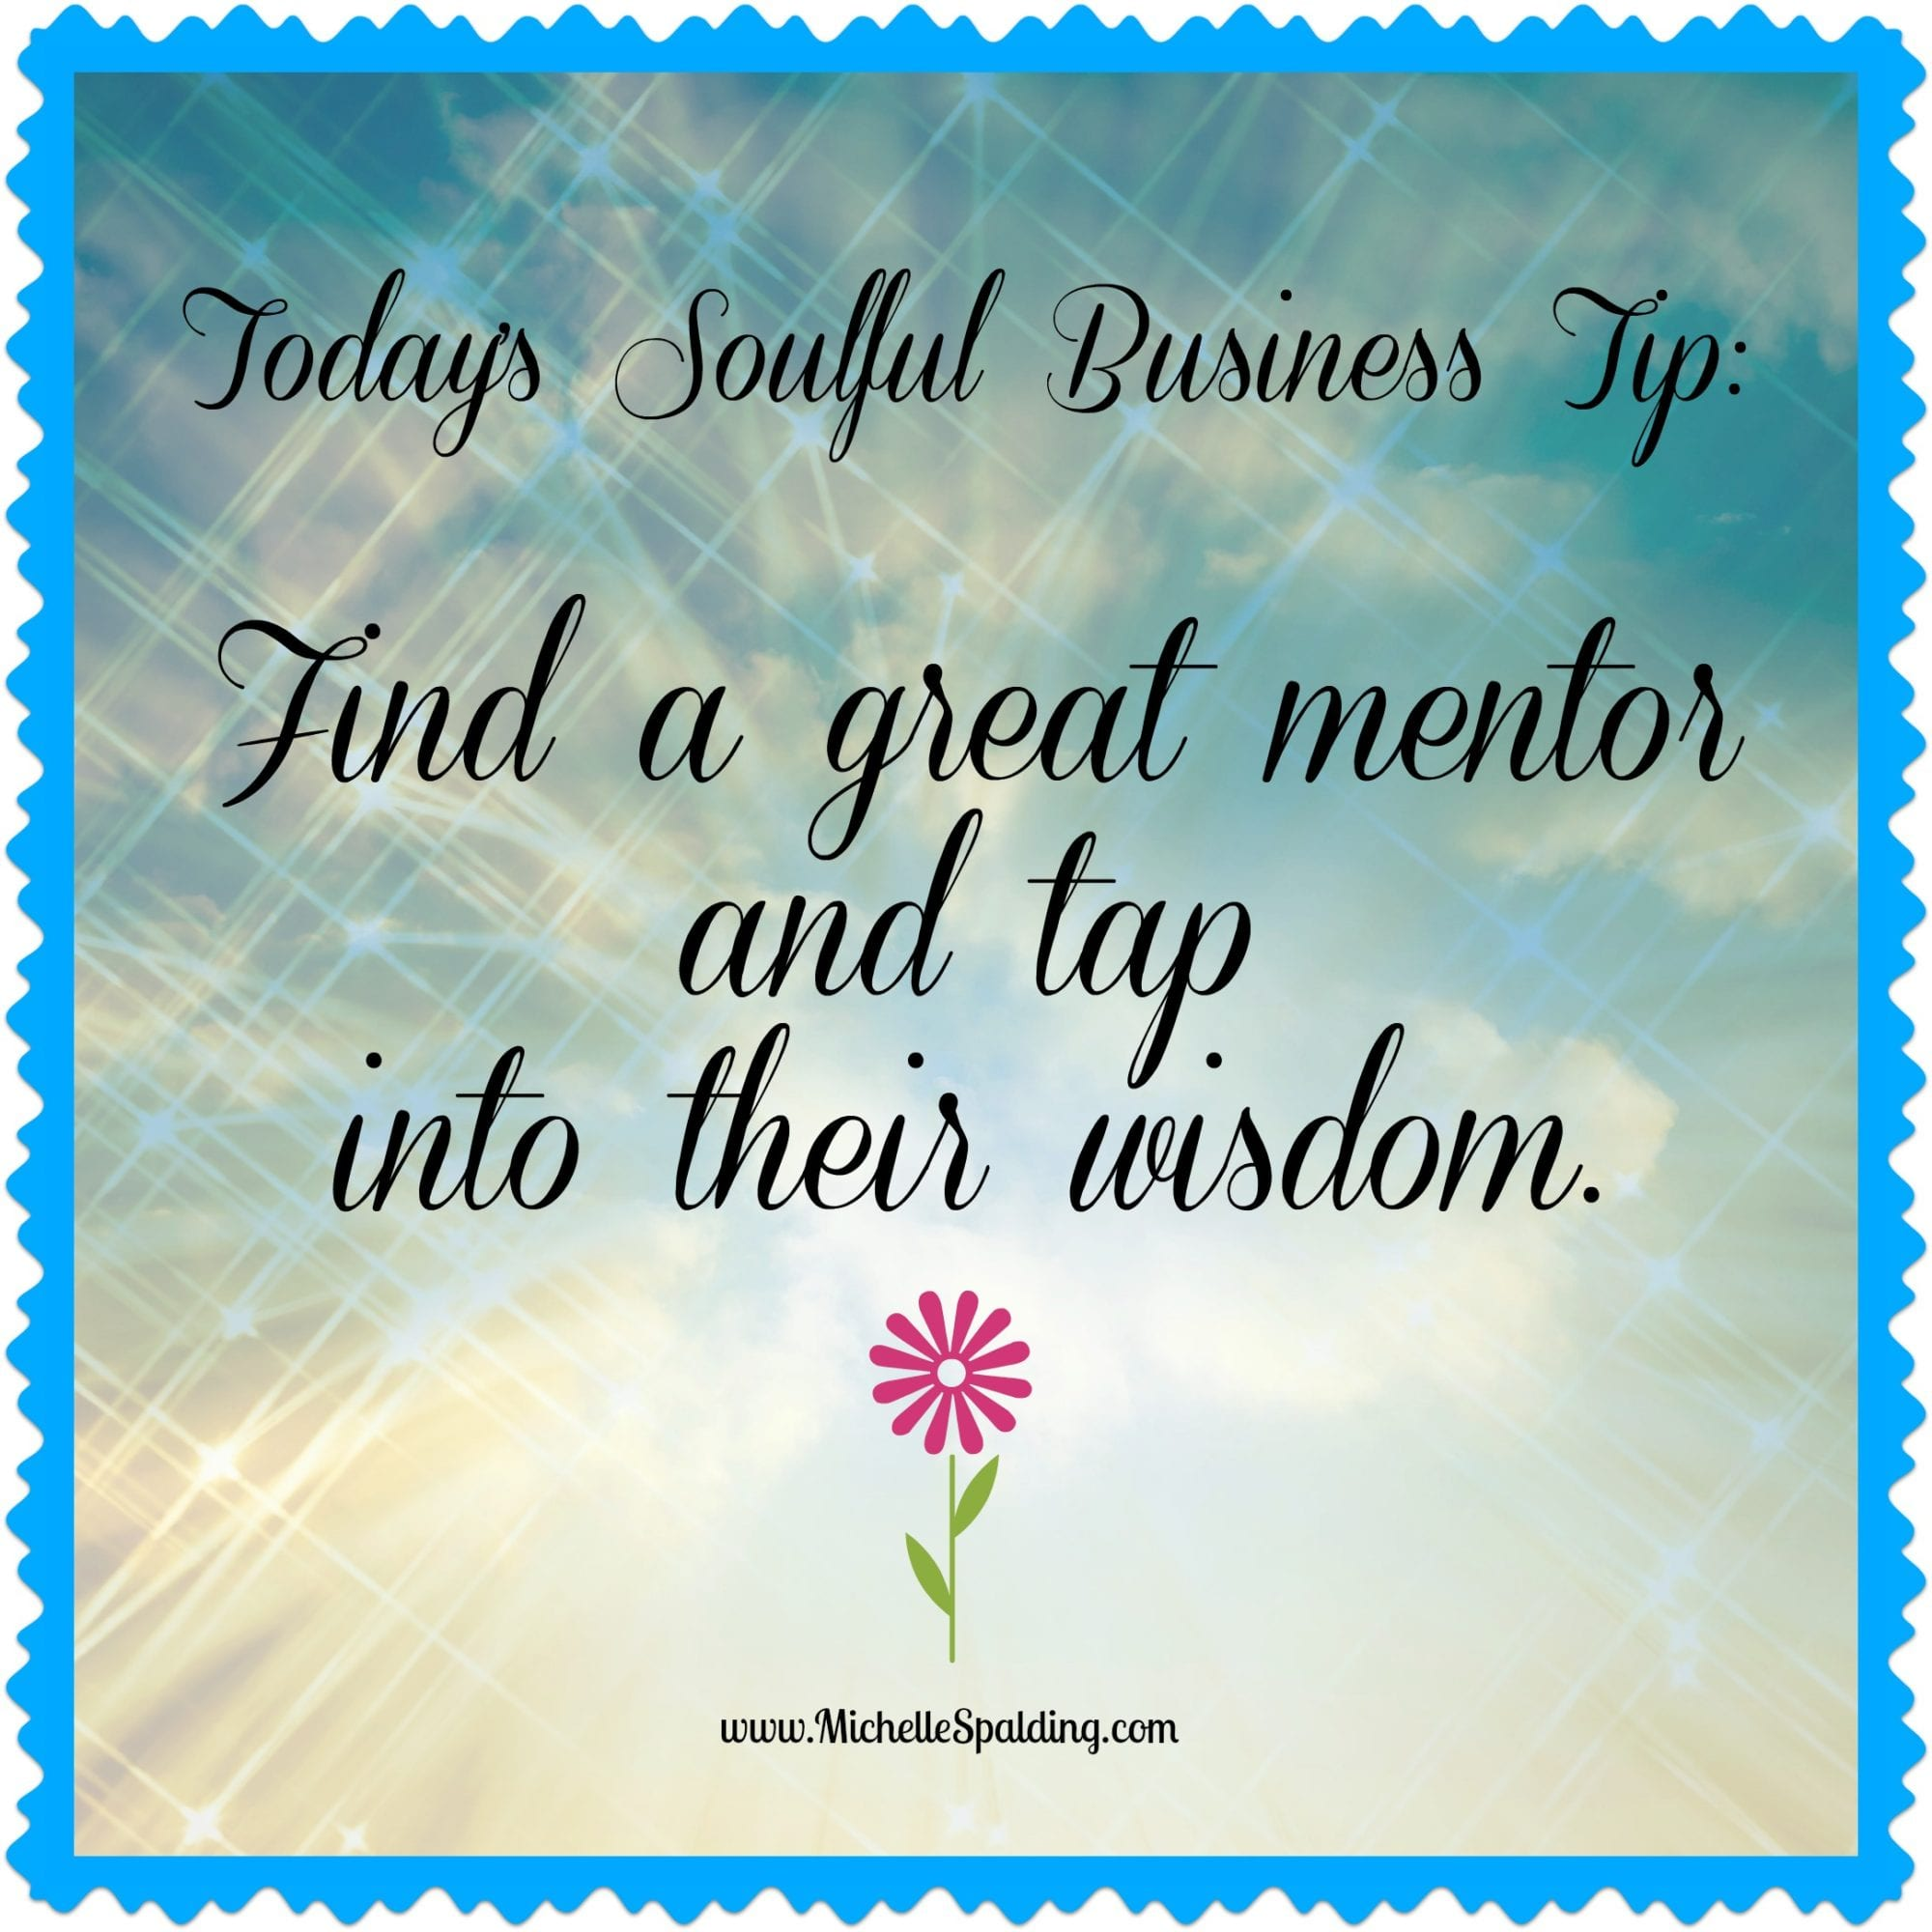 Find a great mentor and tap into their wisdom